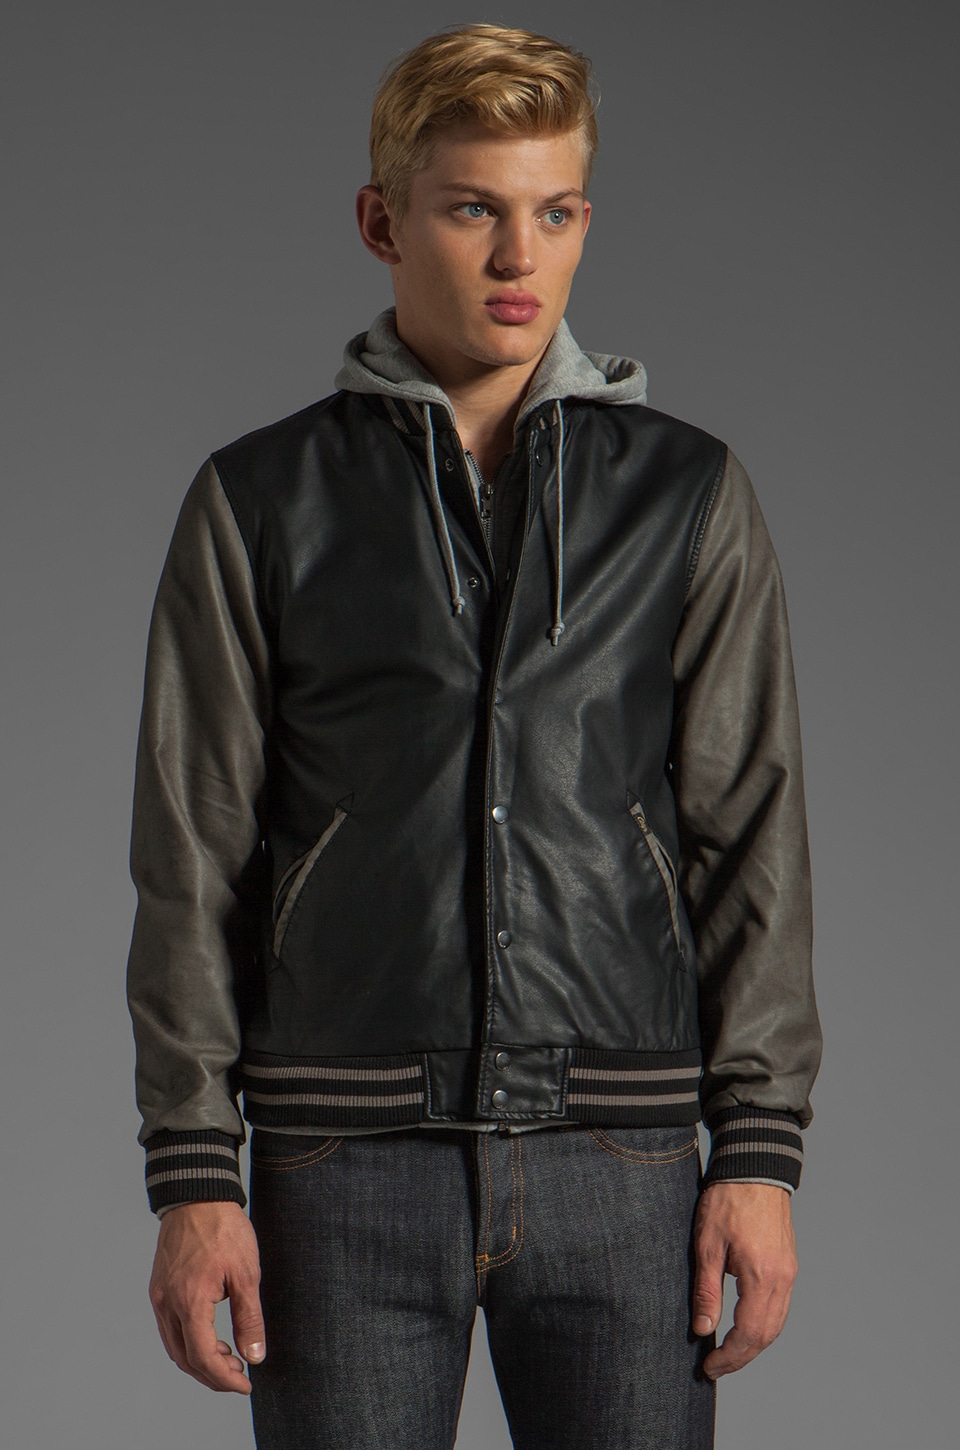 Obey Varsity Hooded Leather Jacket in Black/Grey